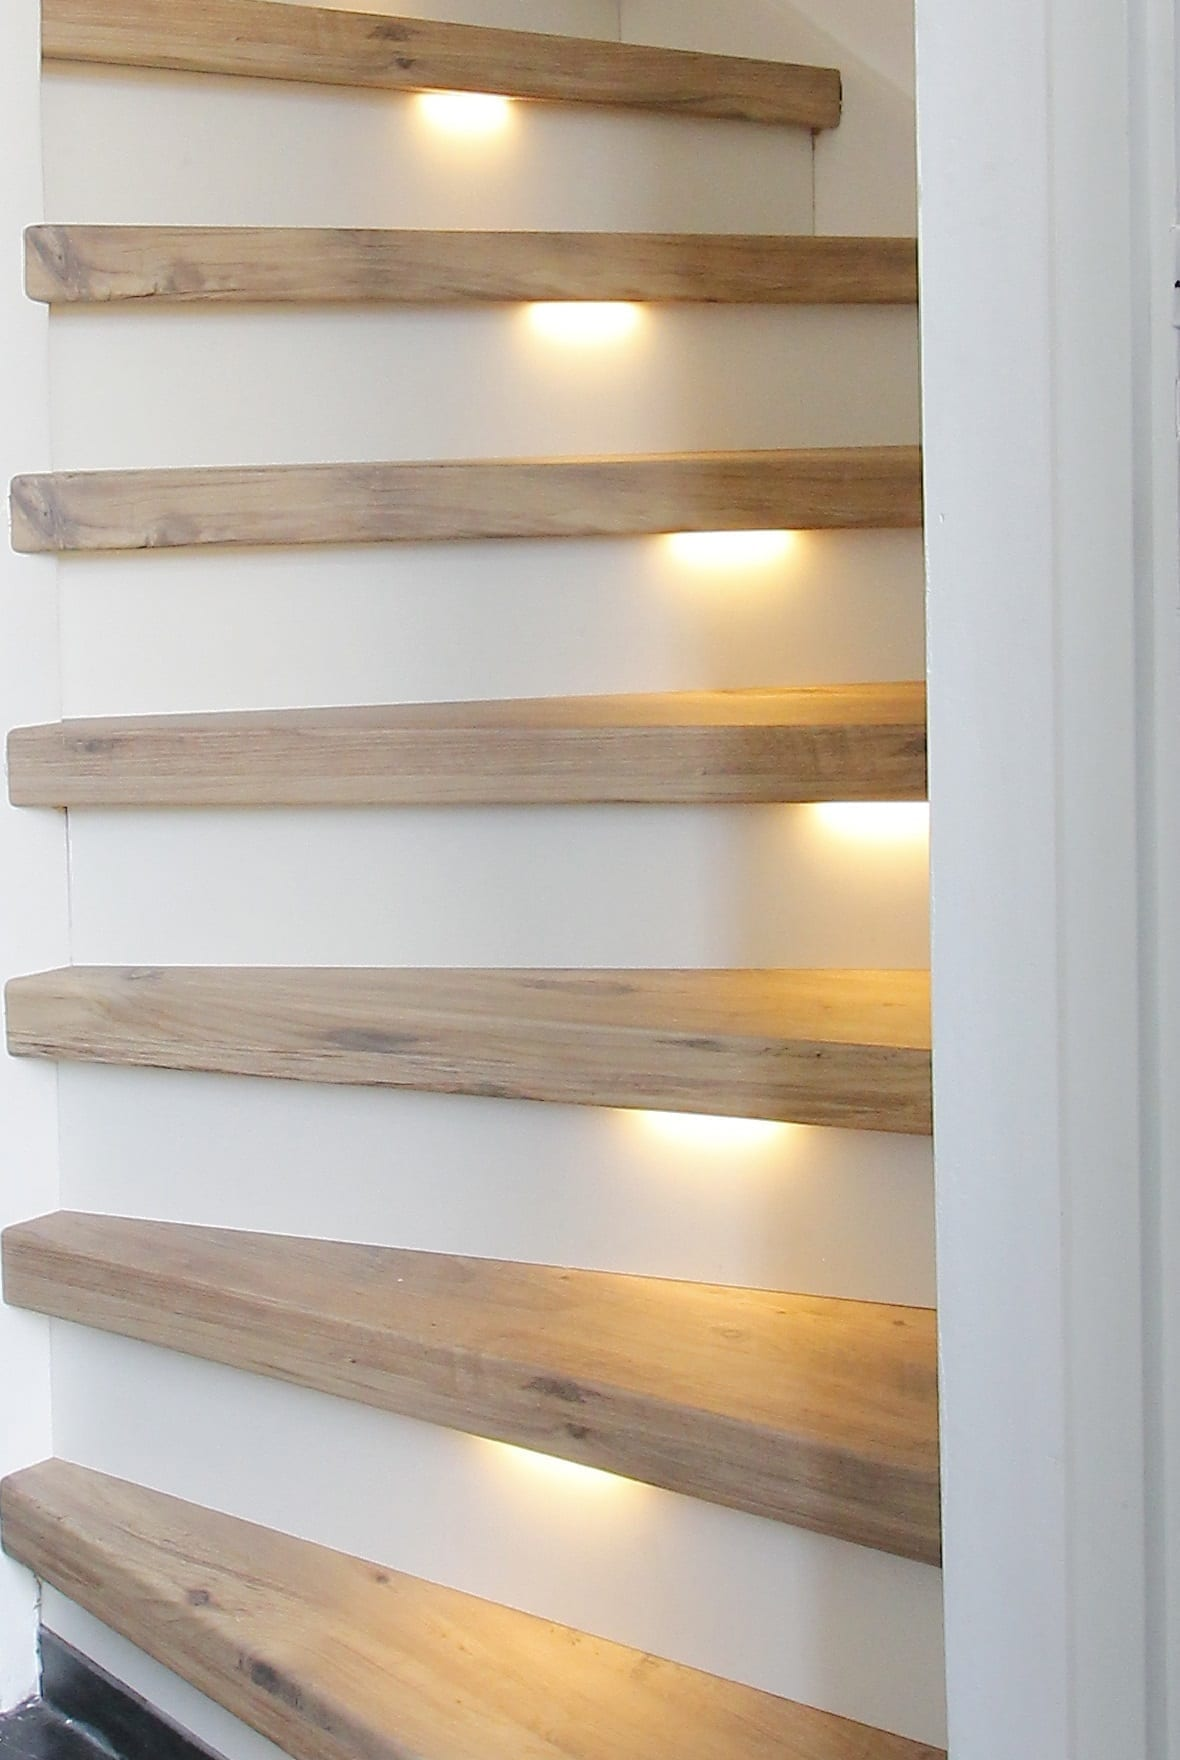 Trapverlichting: speciale LED-strips voor onder een smalle traprand